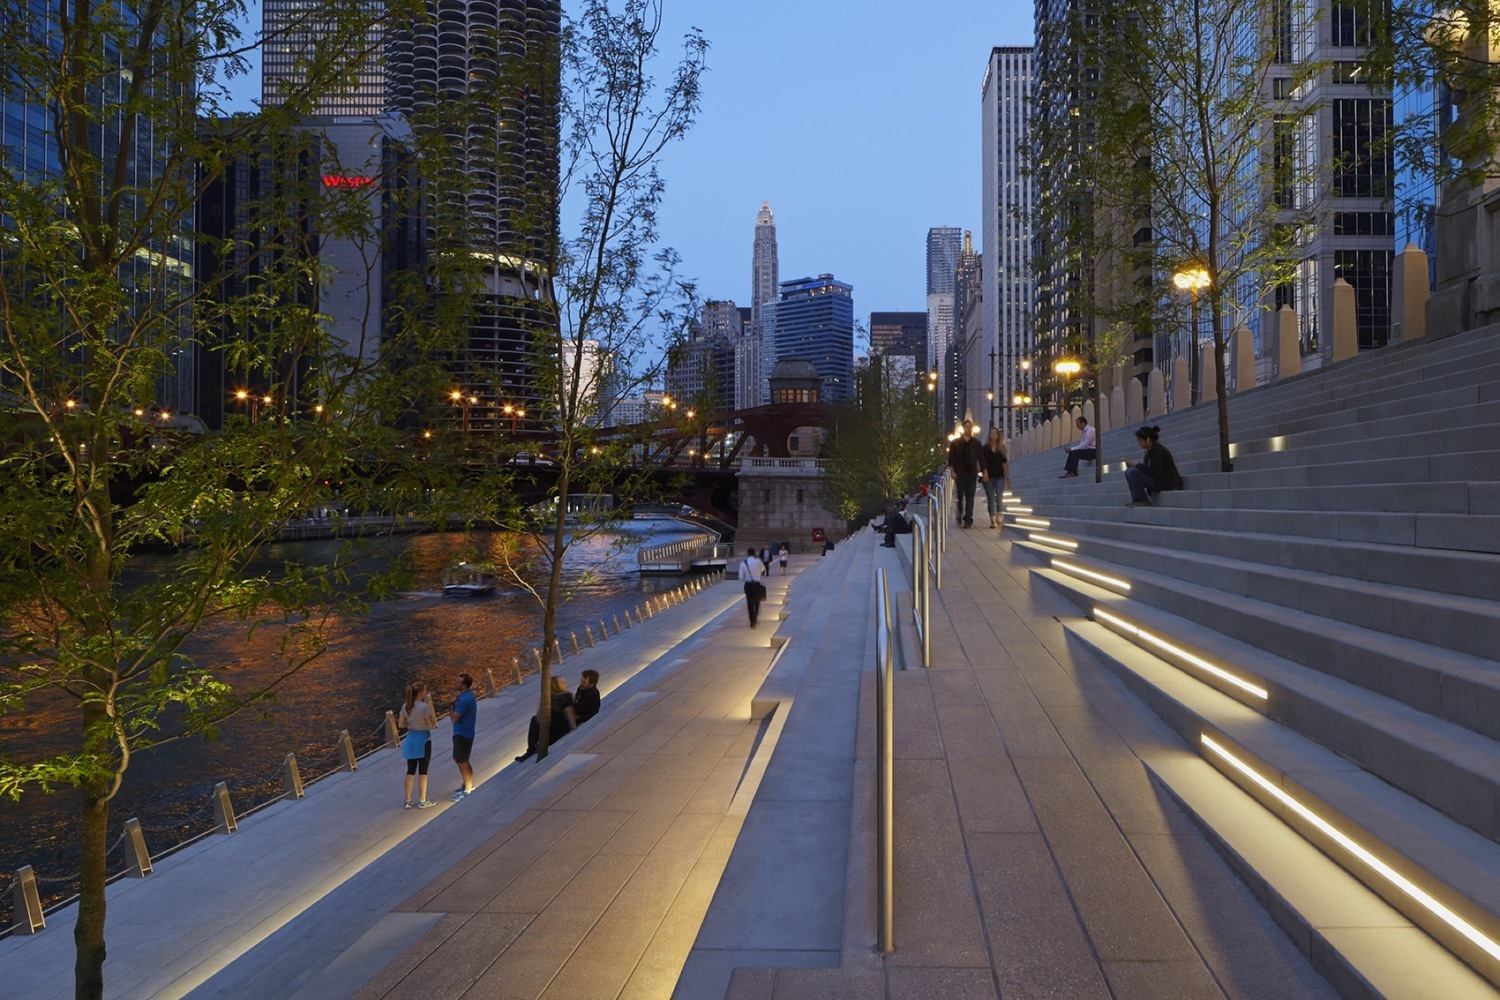 Gallery of This Mesmerizing Drone Footage Showcases the Success of the New Chicago Riverwalk - 9